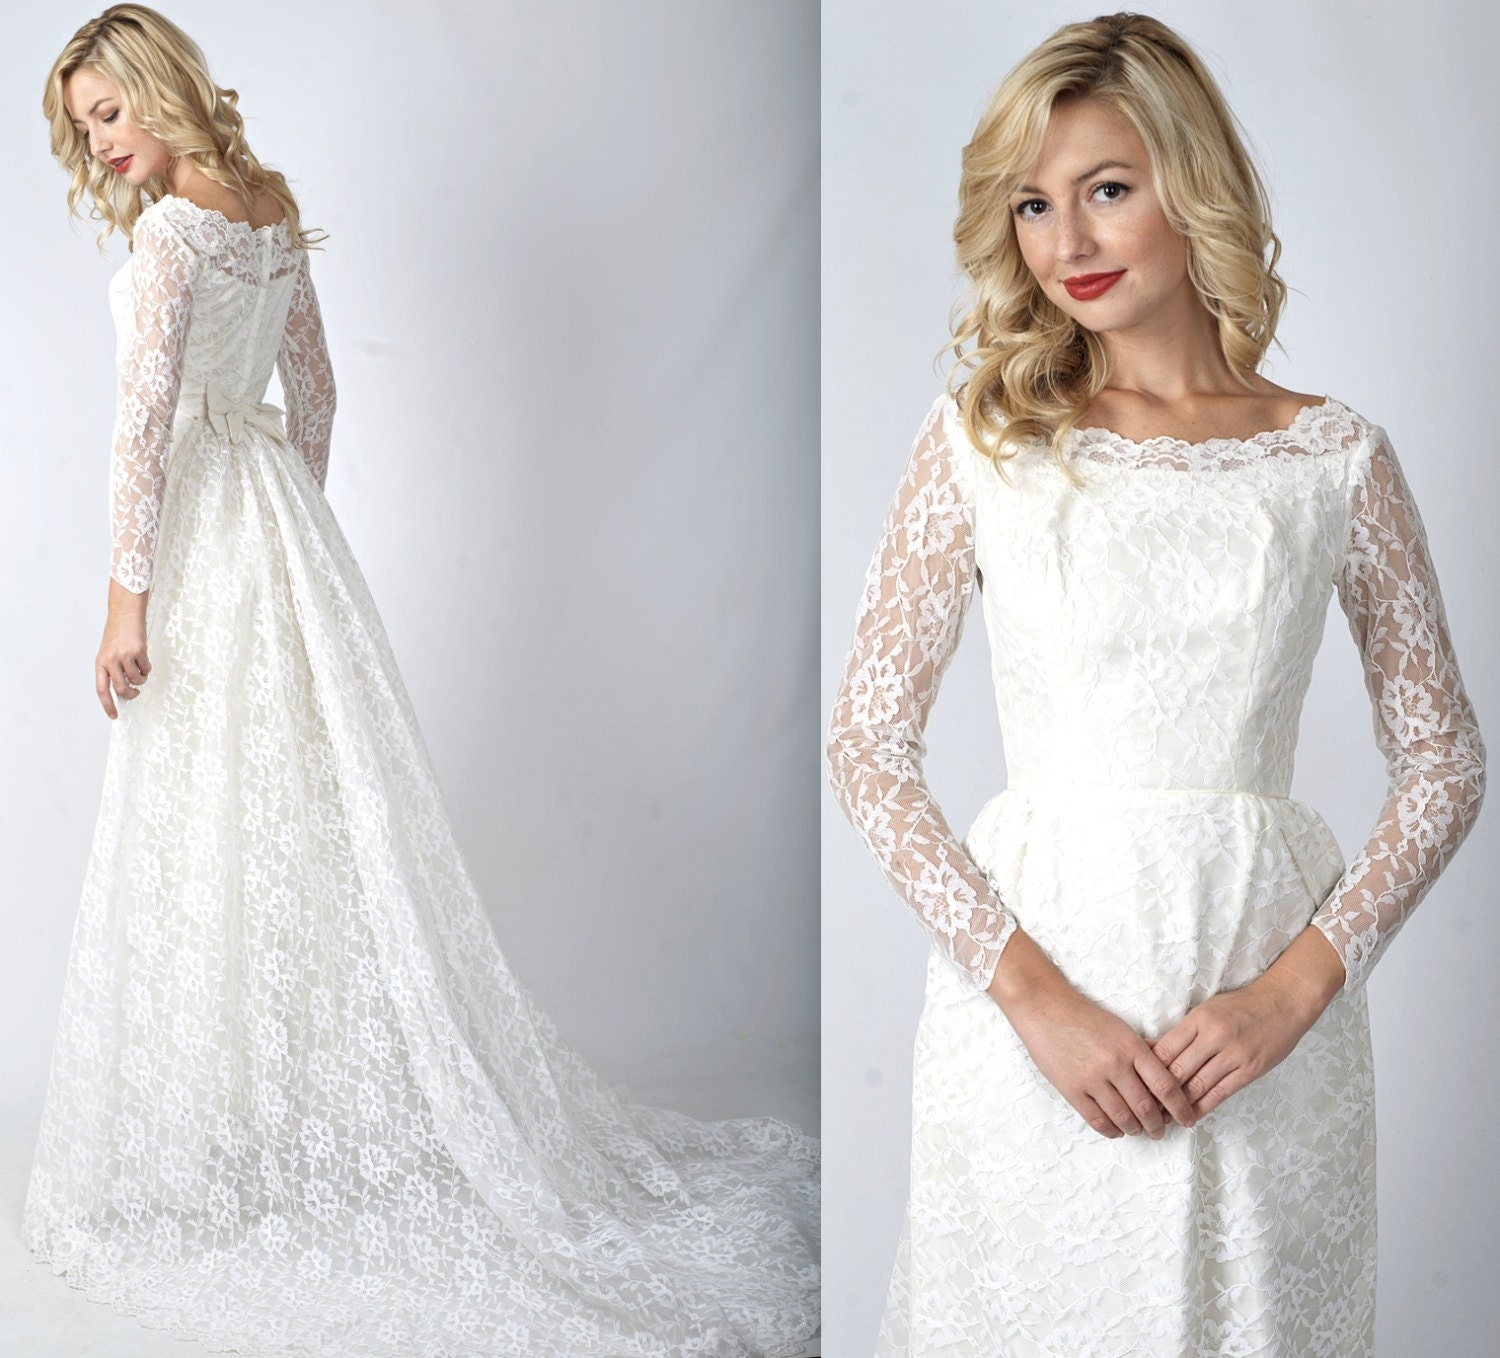 Vintage Wedding Dresses 50s 60s: Vintage 50s 60s White Wedding Dress Lace Train Floral Lace XXS